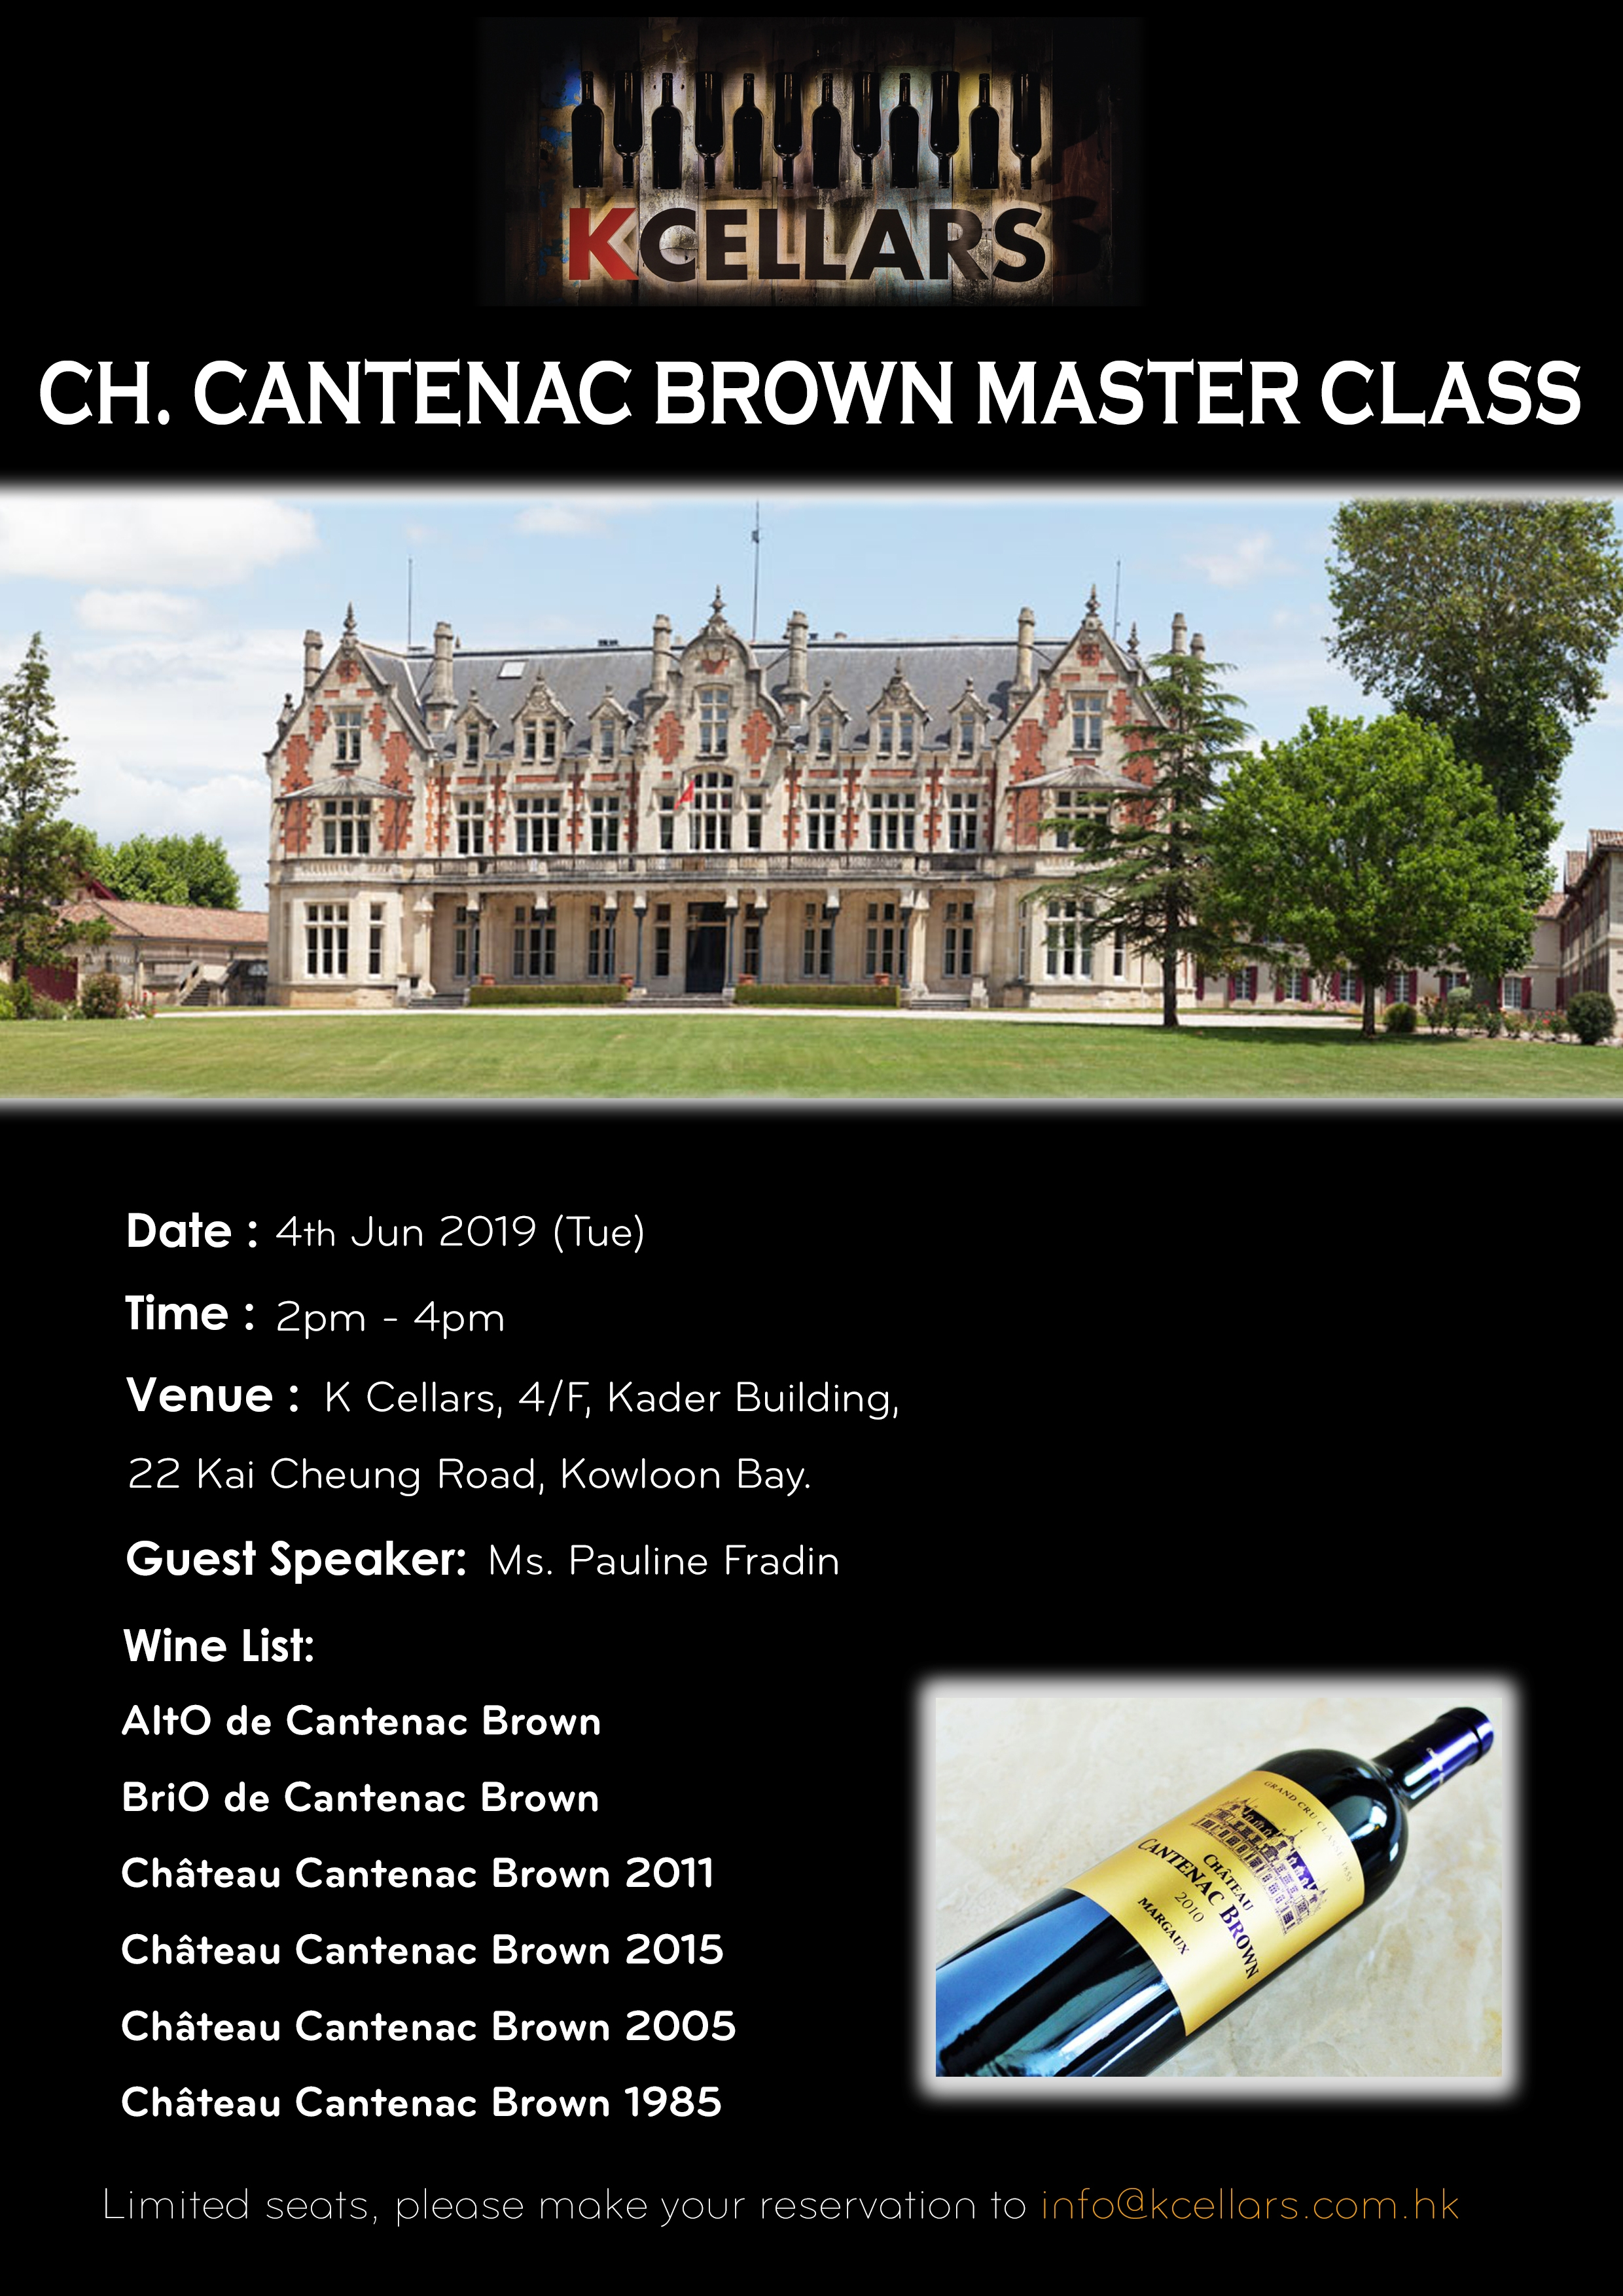 Ch. Cantenac Brown Master Class